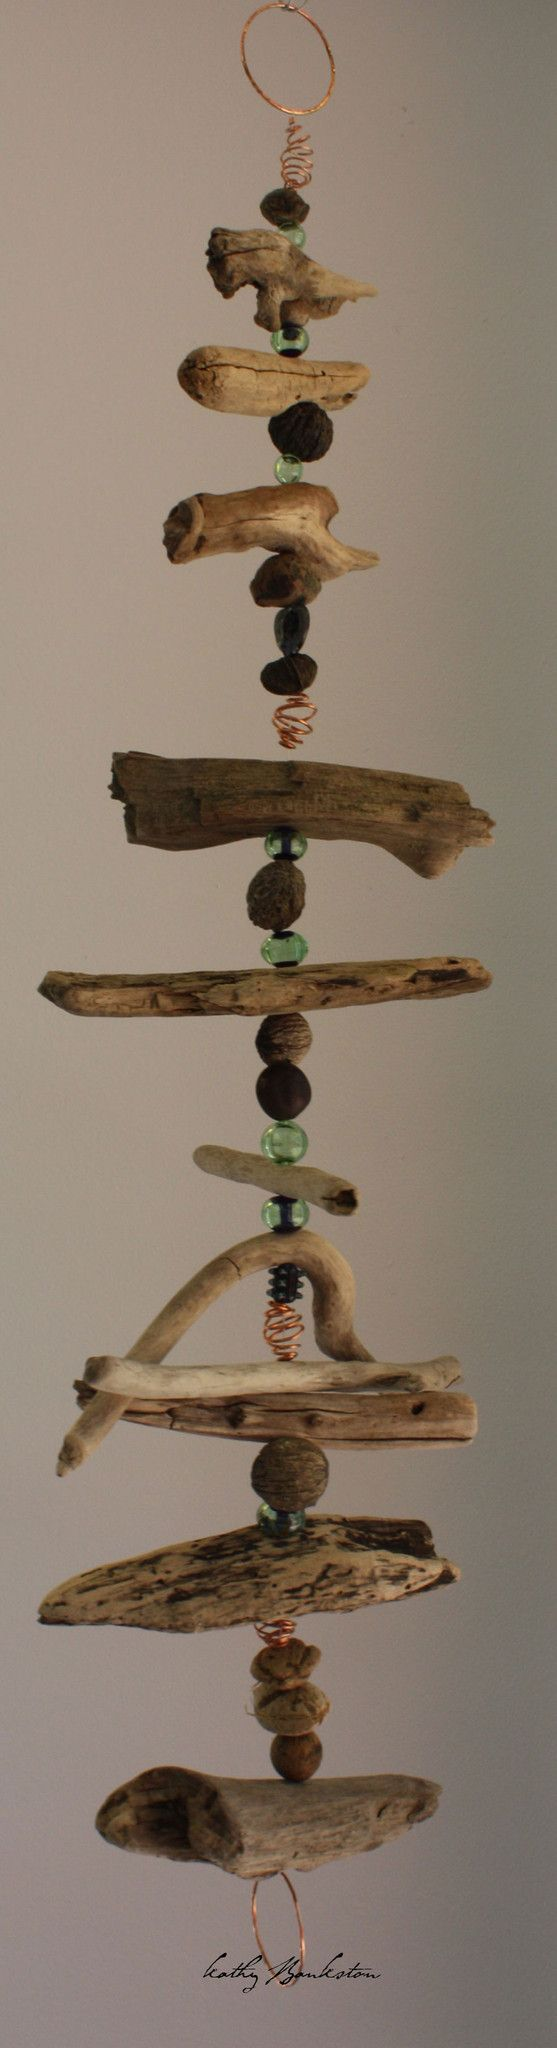 1549 best images about hanging on mobiles rain chains for How to make driftwood crafts